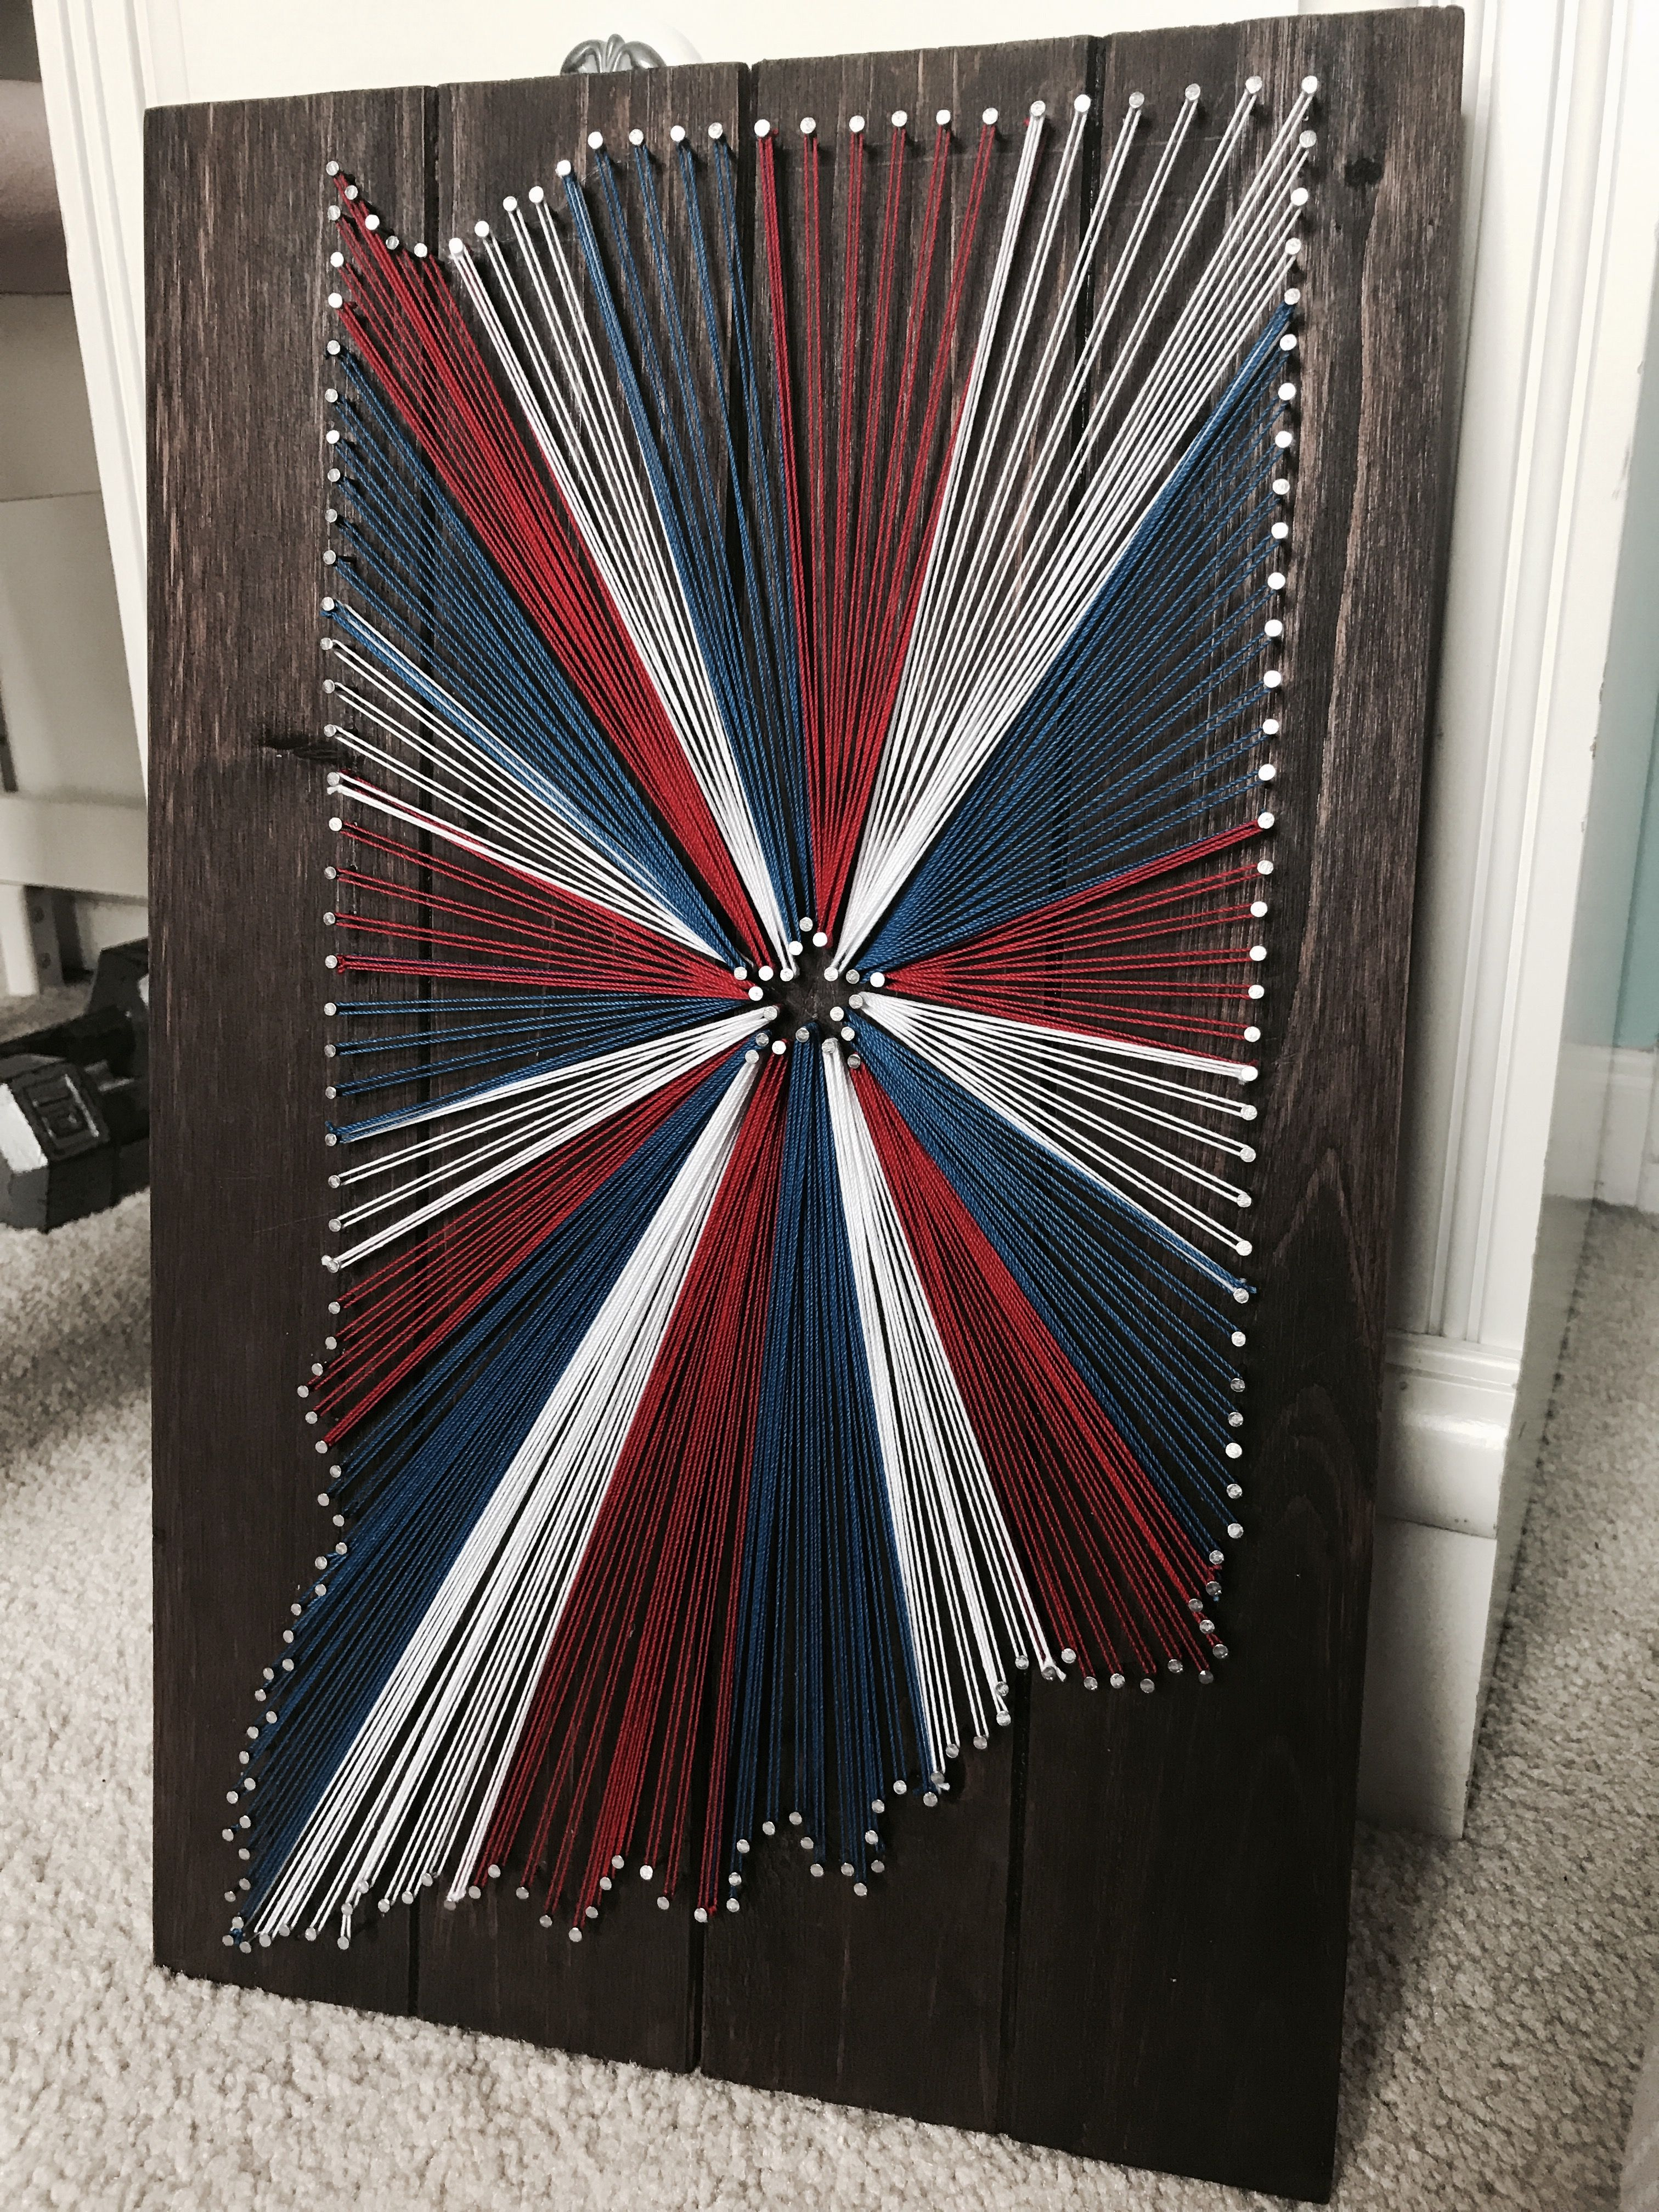 String art state indiana red white and blue rustic board string art state indiana red white and blue rustic board gumiabroncs Gallery